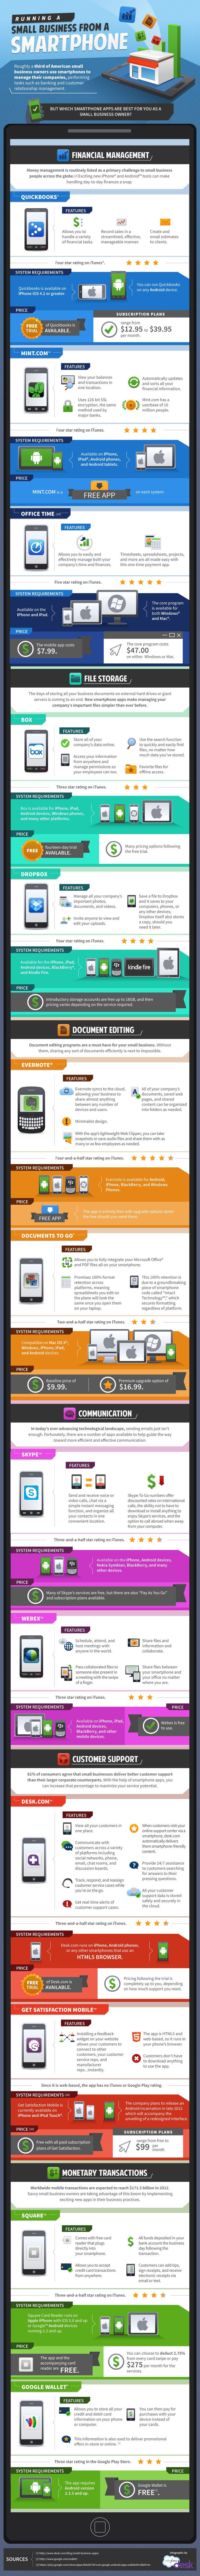 Running a Small Business from a Smartphone In a great infograph from SalesForce, we can see quite a number of apps that small business owners could be using to help run their business from their smartphone.